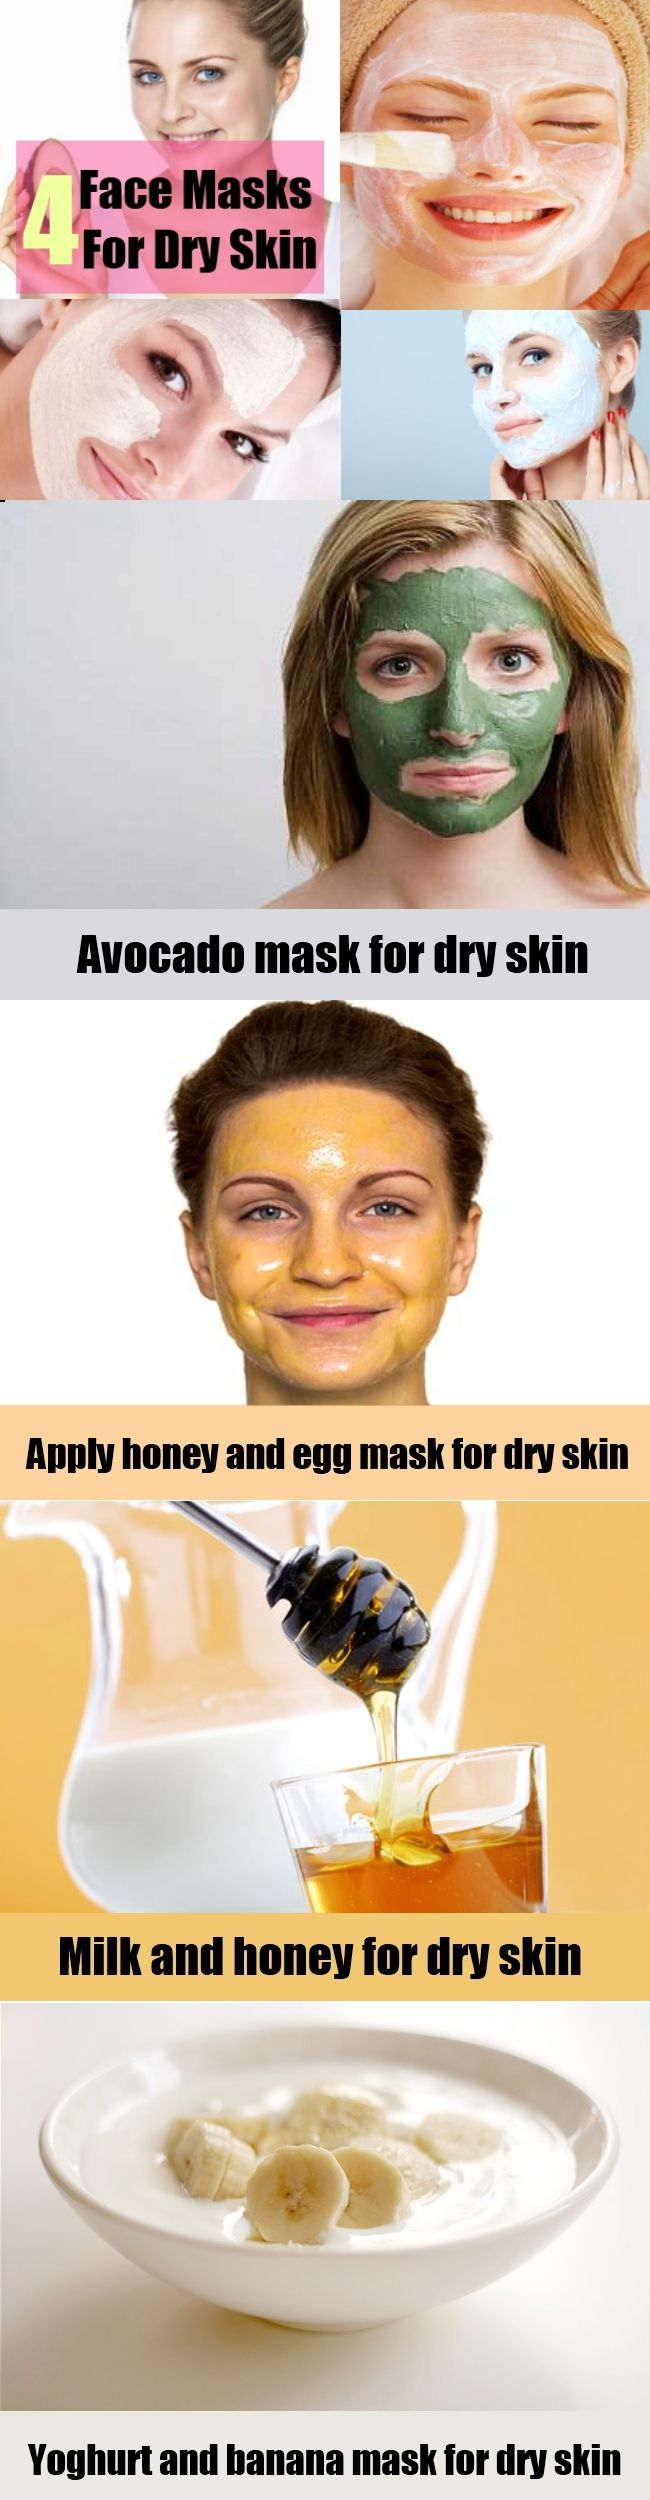 4 Natural Face Masks For Dry Skin